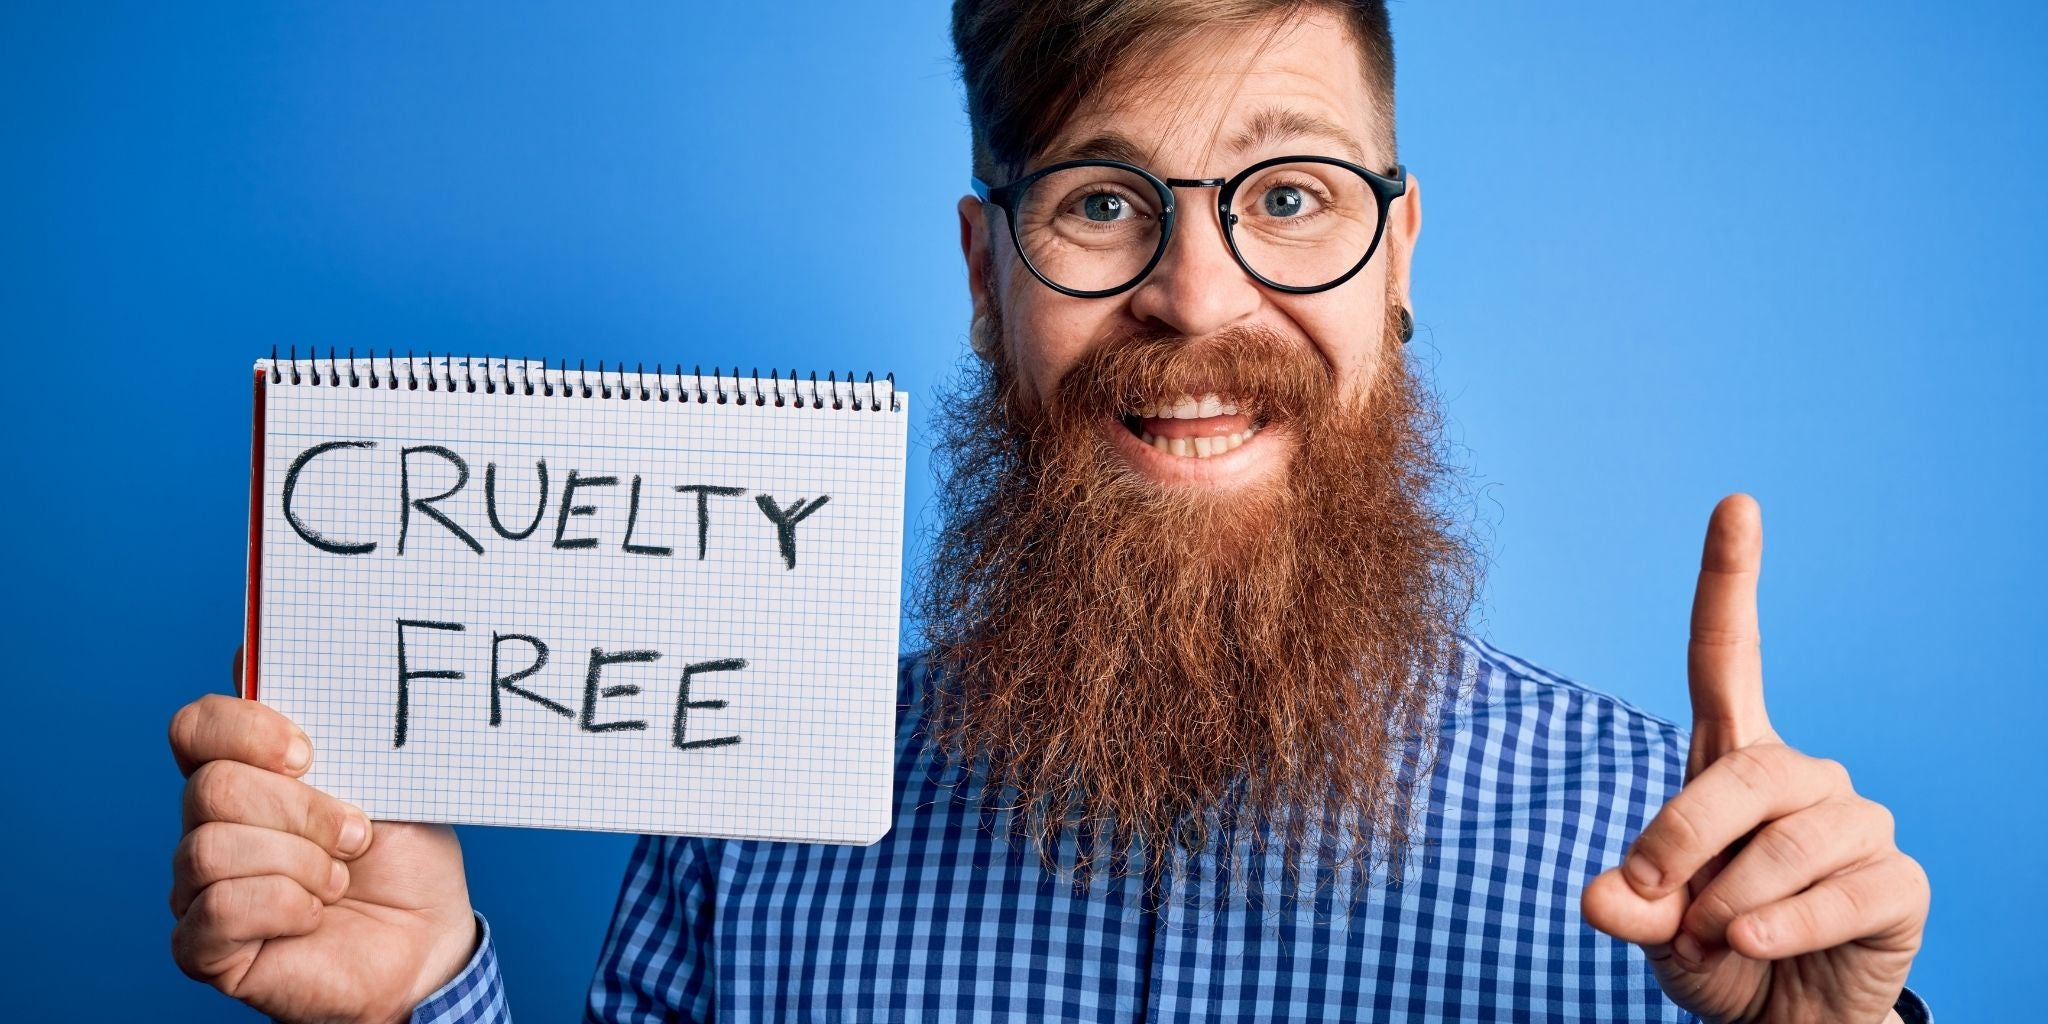 5 Reasons to Pick Cruelty Free Eczema Products